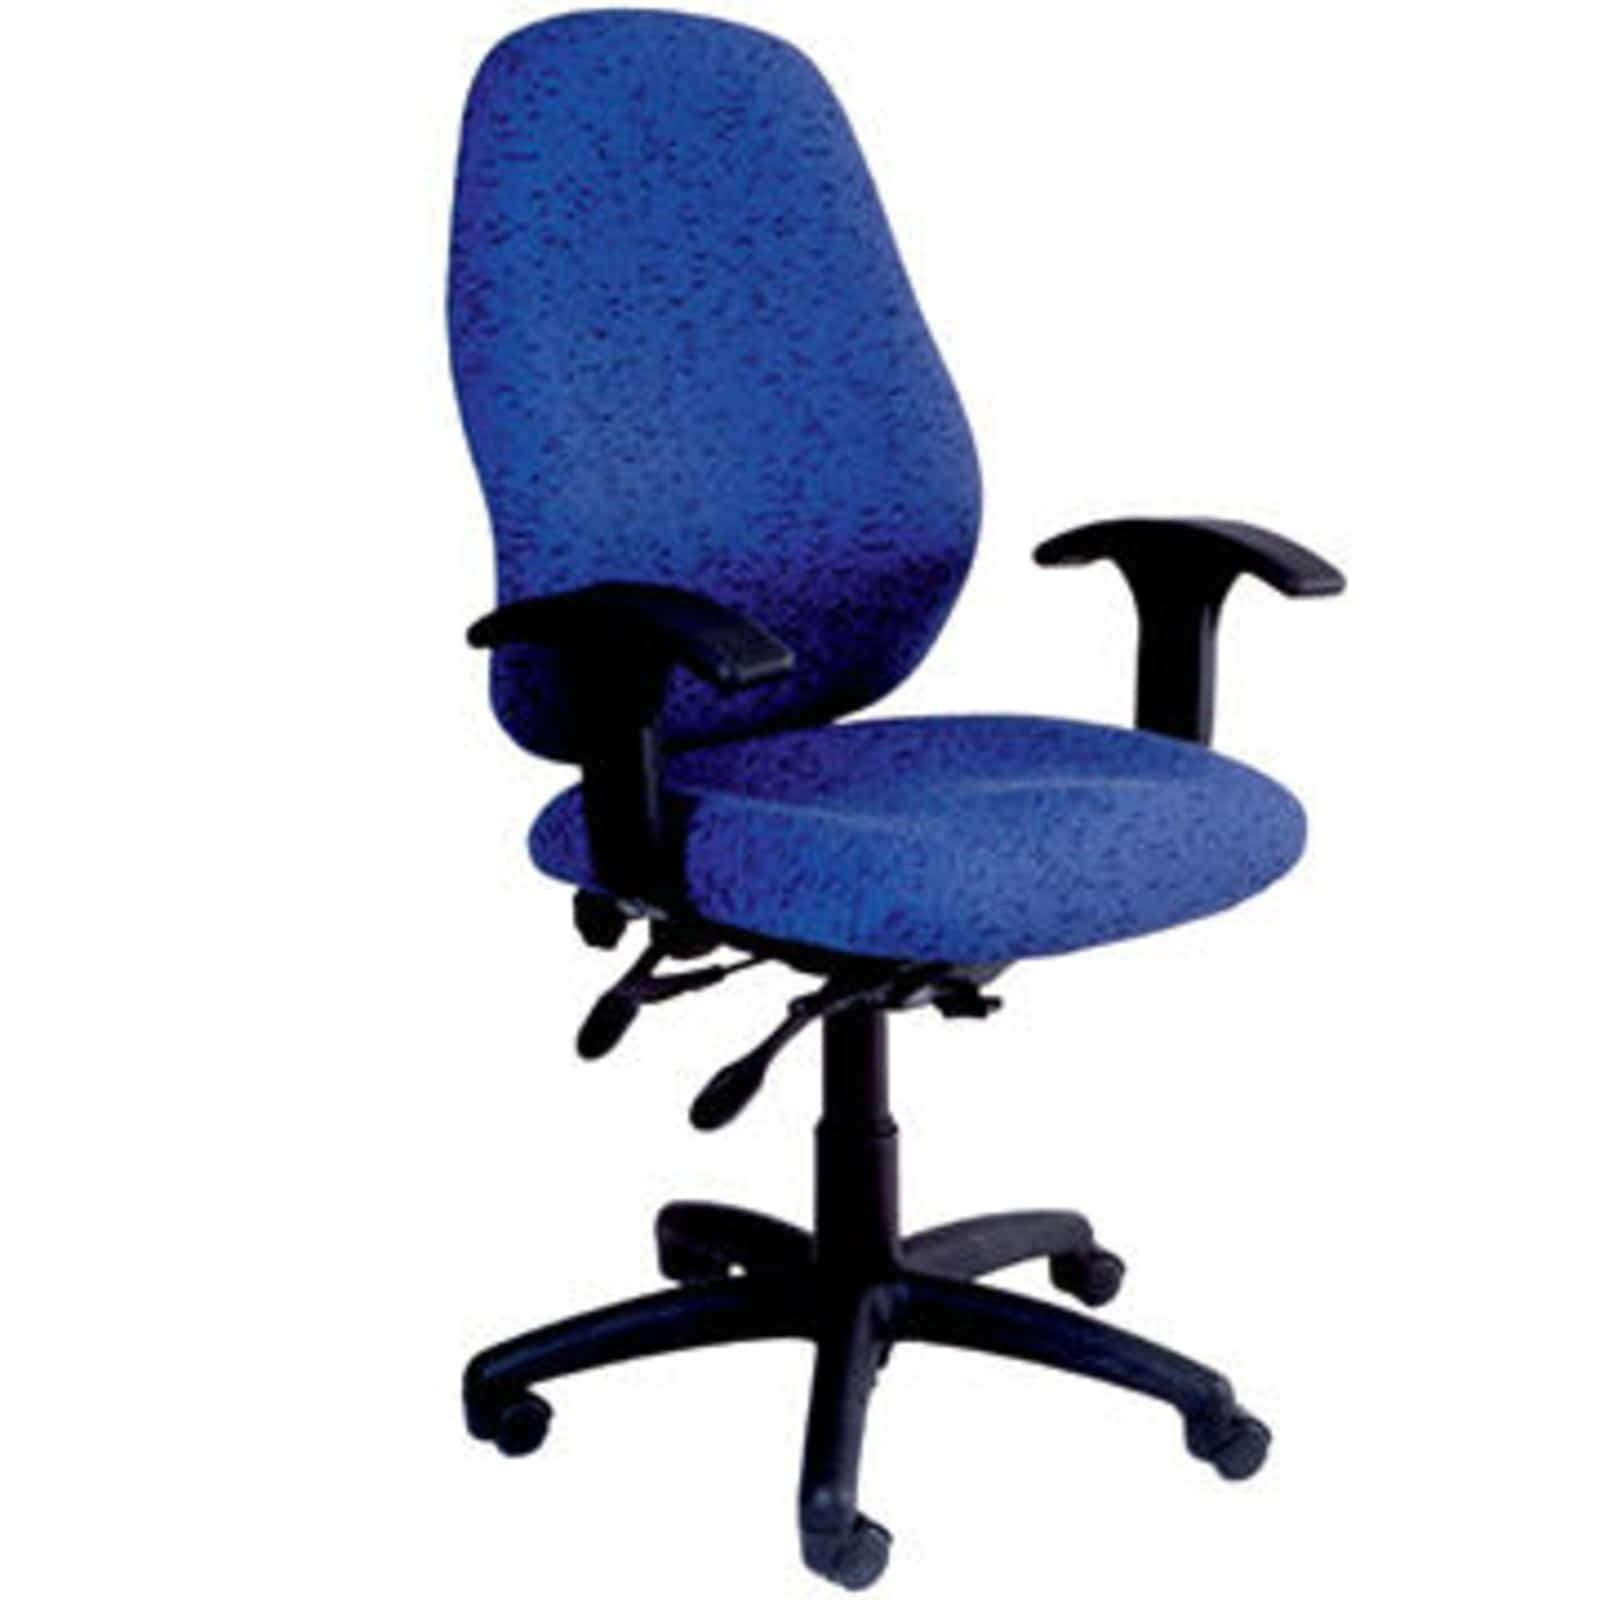 office chair manufacturer under 50 my opening hours 5 124 connie cres concord on